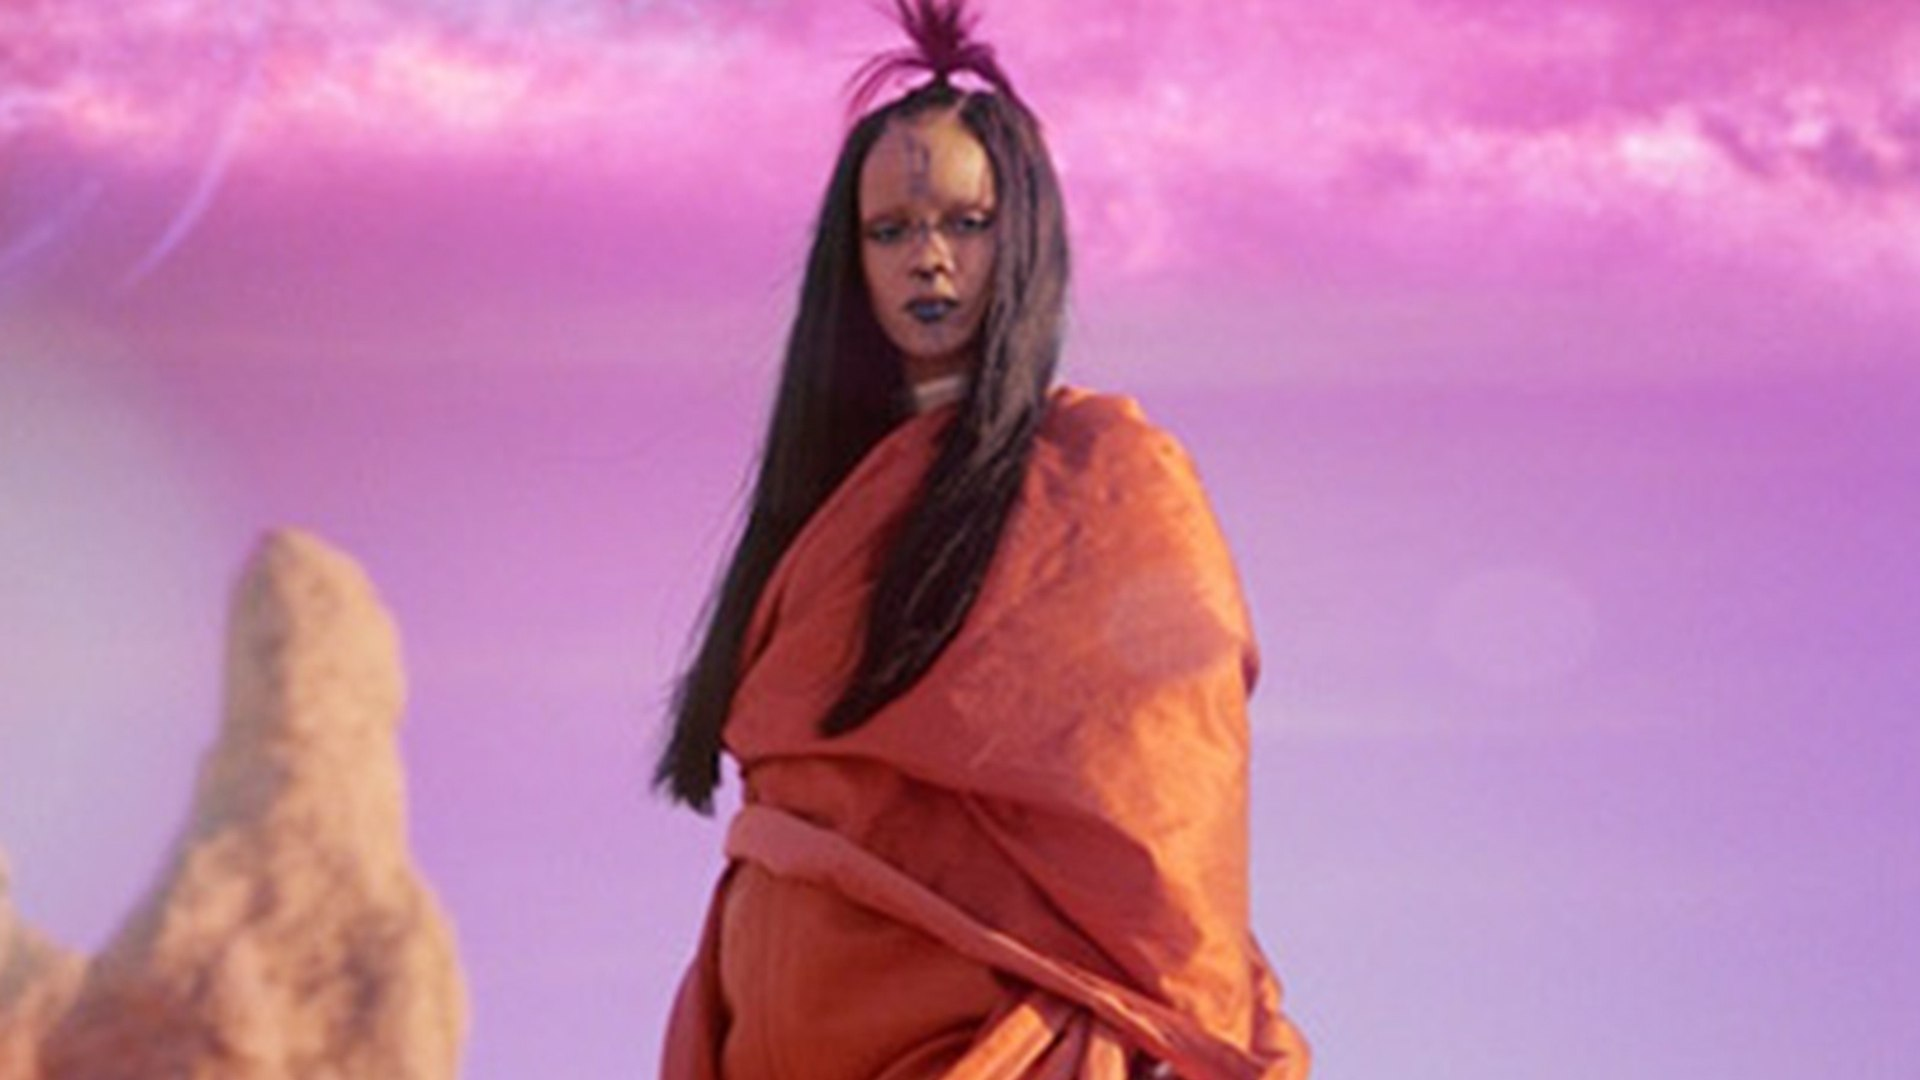 Rihanna Sledgehammer Music Video from Star Trek Beyond